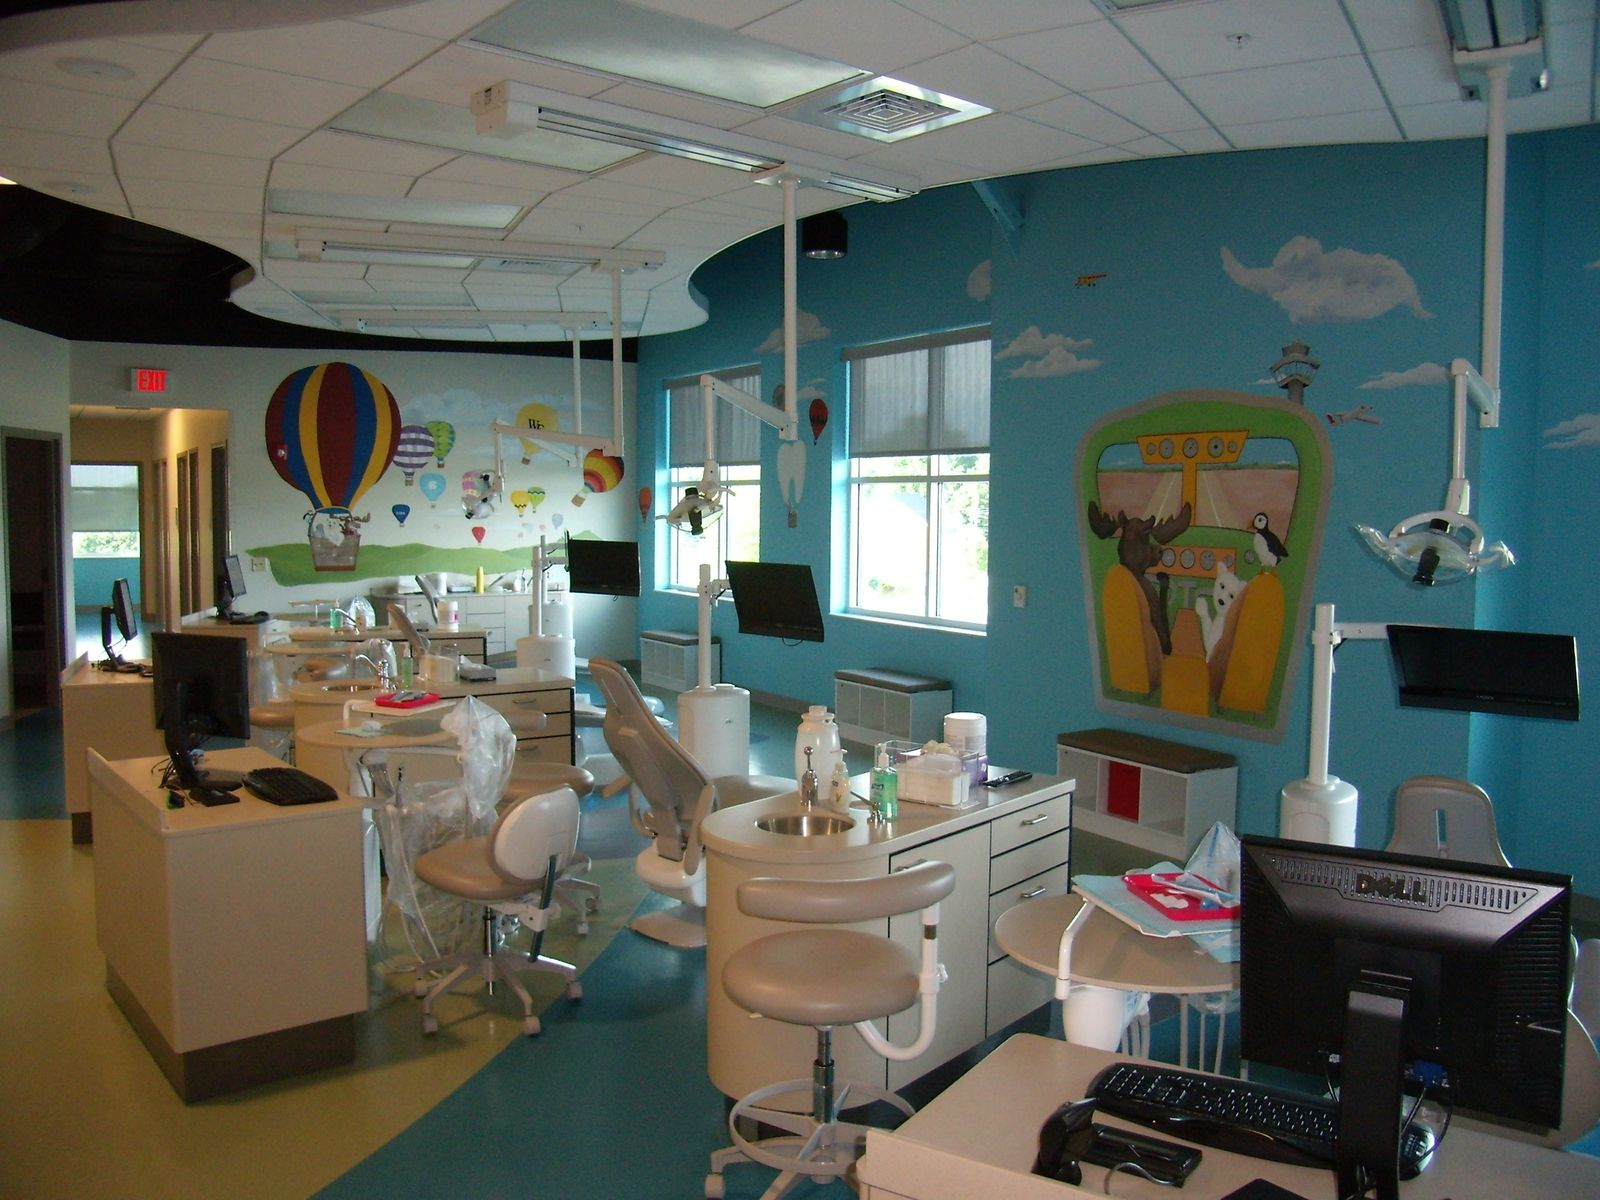 Hand Made Pediatric Dental Office by Ckpaints | CustomMade.com